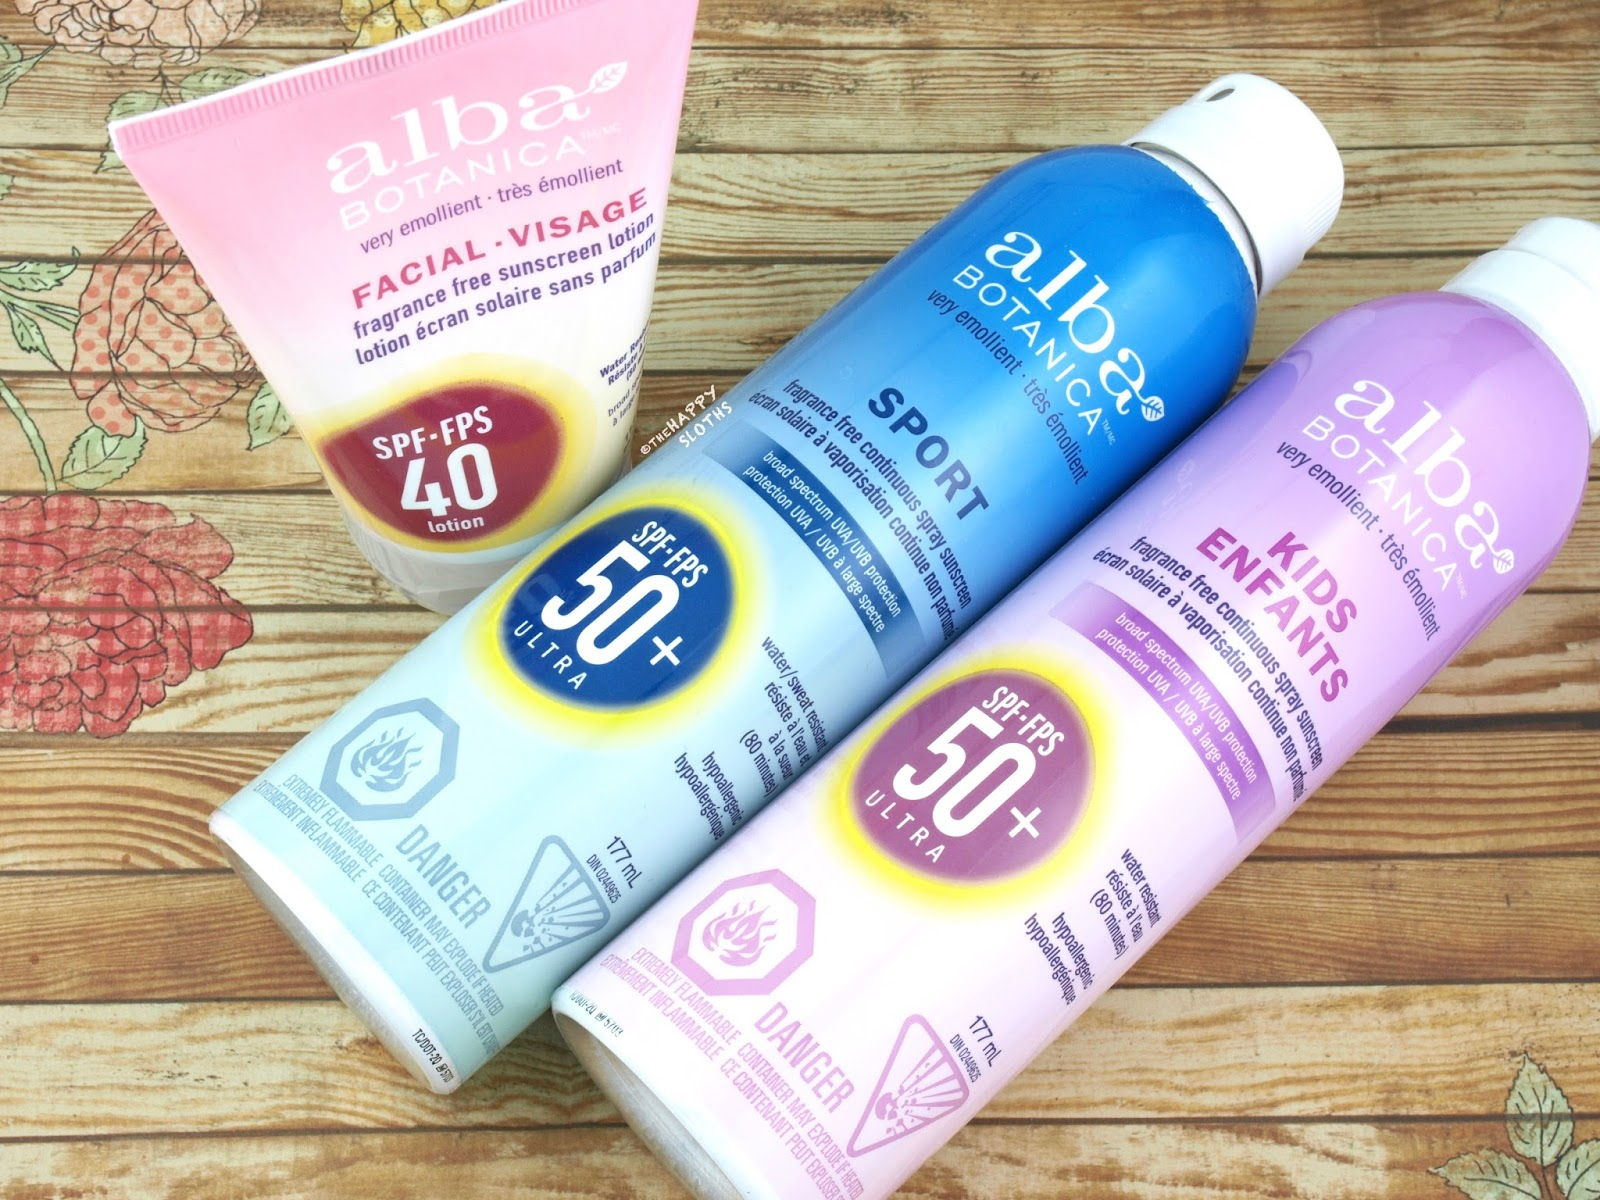 Alba Botanica Sunscreen | Review + CLOSED Giveaway | The